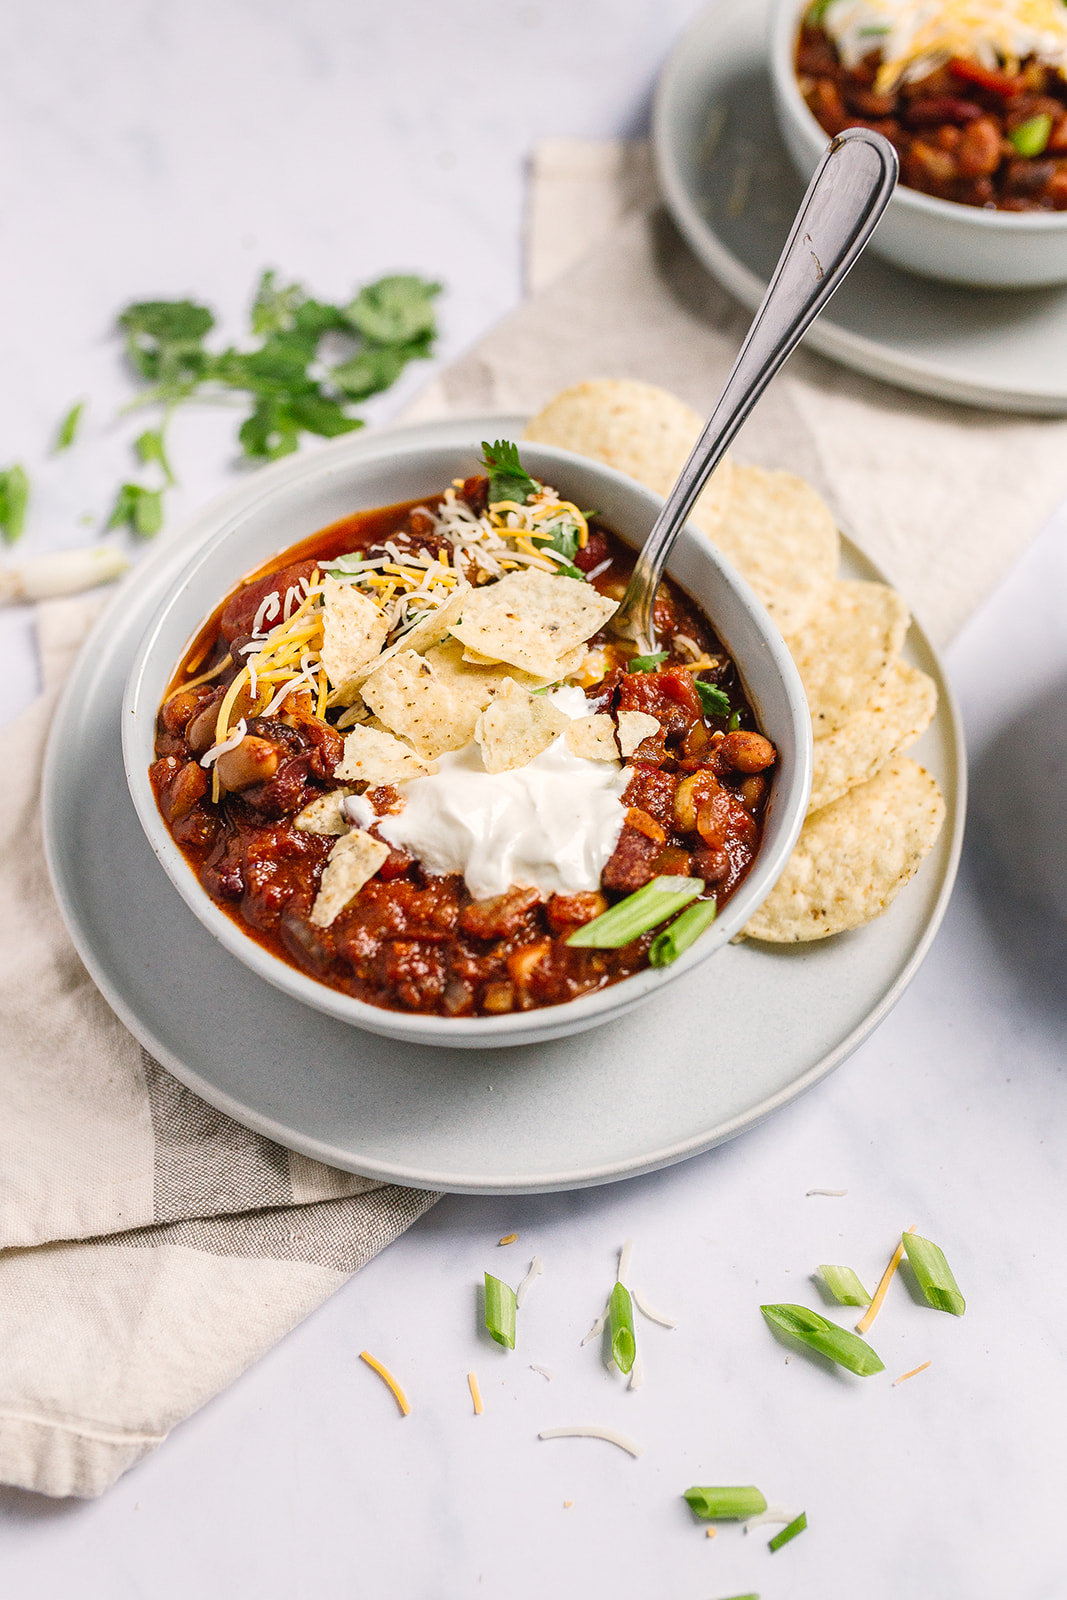 chili topping options